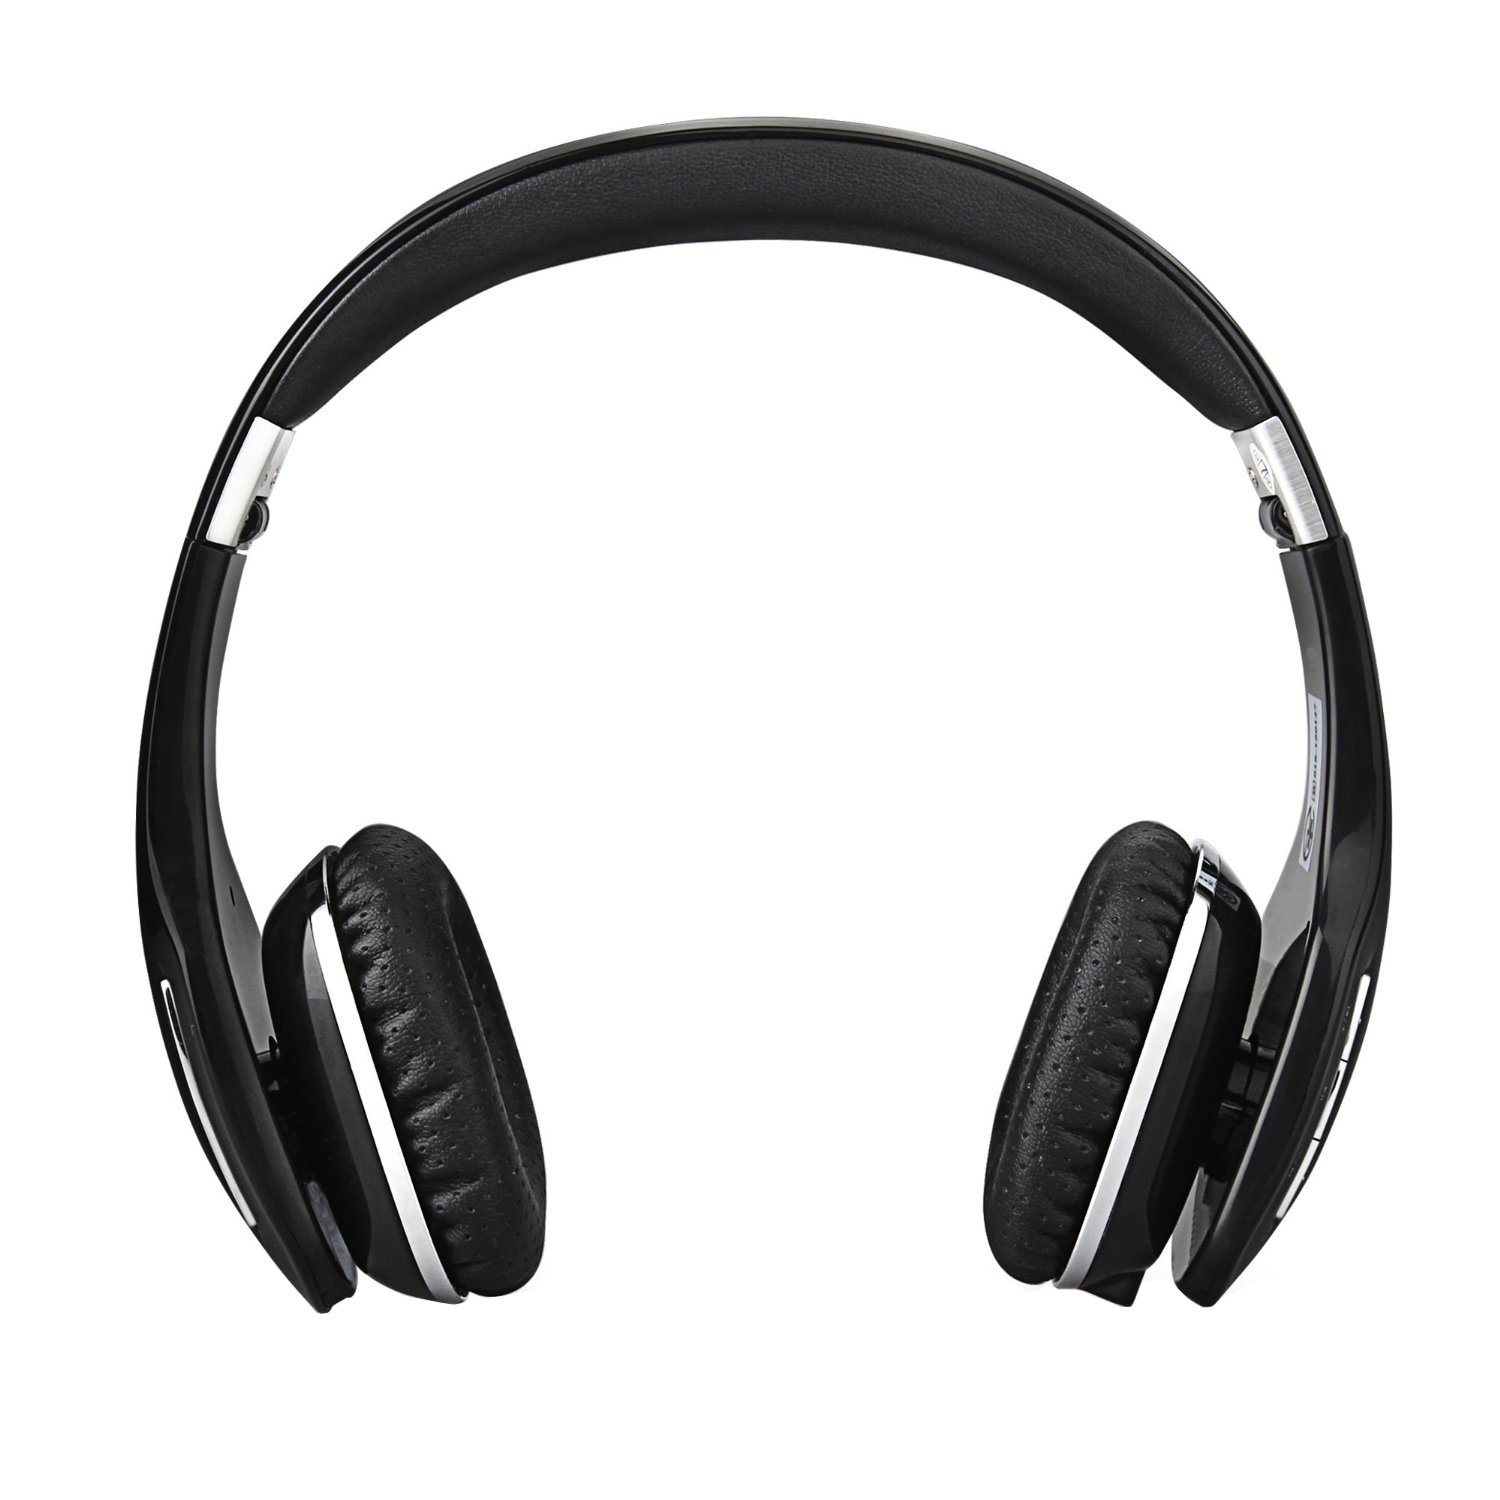 Auriculares AUSDOM M07 Bluetooth 4.0 Inalambrico Stereo Plegable Over-ear Headsets con Mic Modo Juego para PC/Cell Phone